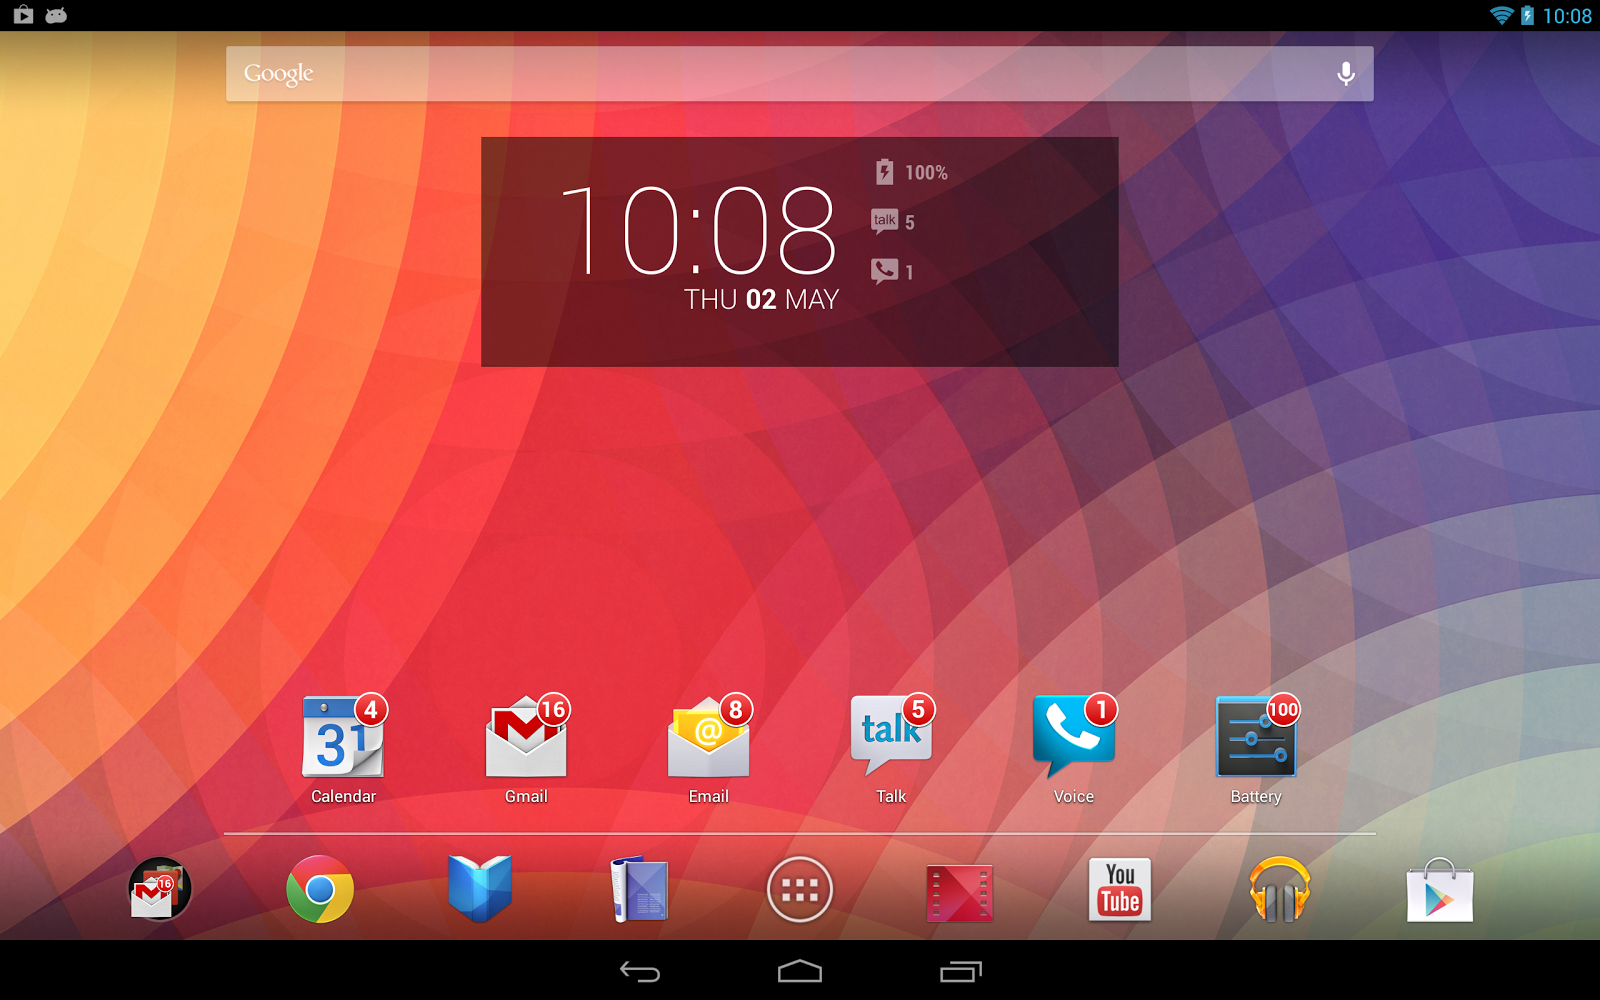 34 Best (And 3 WTF) New Android Apps And Live Wallpapers From The Last 2 Weeks (5/7/13 - 5/21/13)